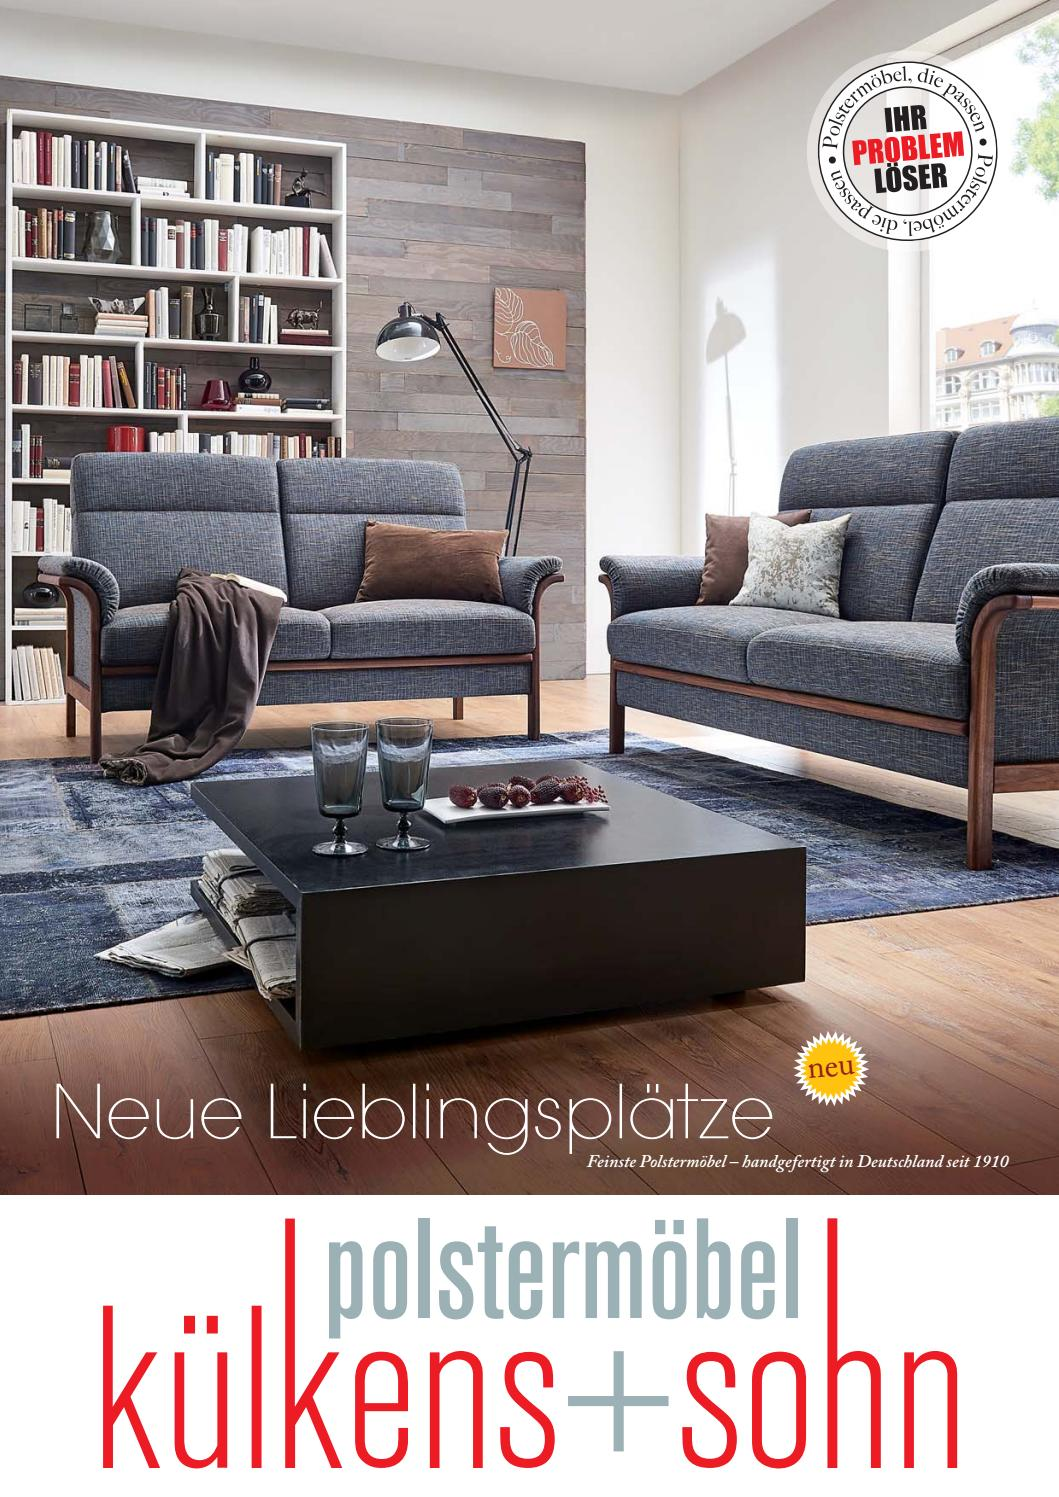 kuelkens sohn hochwert 10 2017 by perspektive werbeagentur issuu. Black Bedroom Furniture Sets. Home Design Ideas